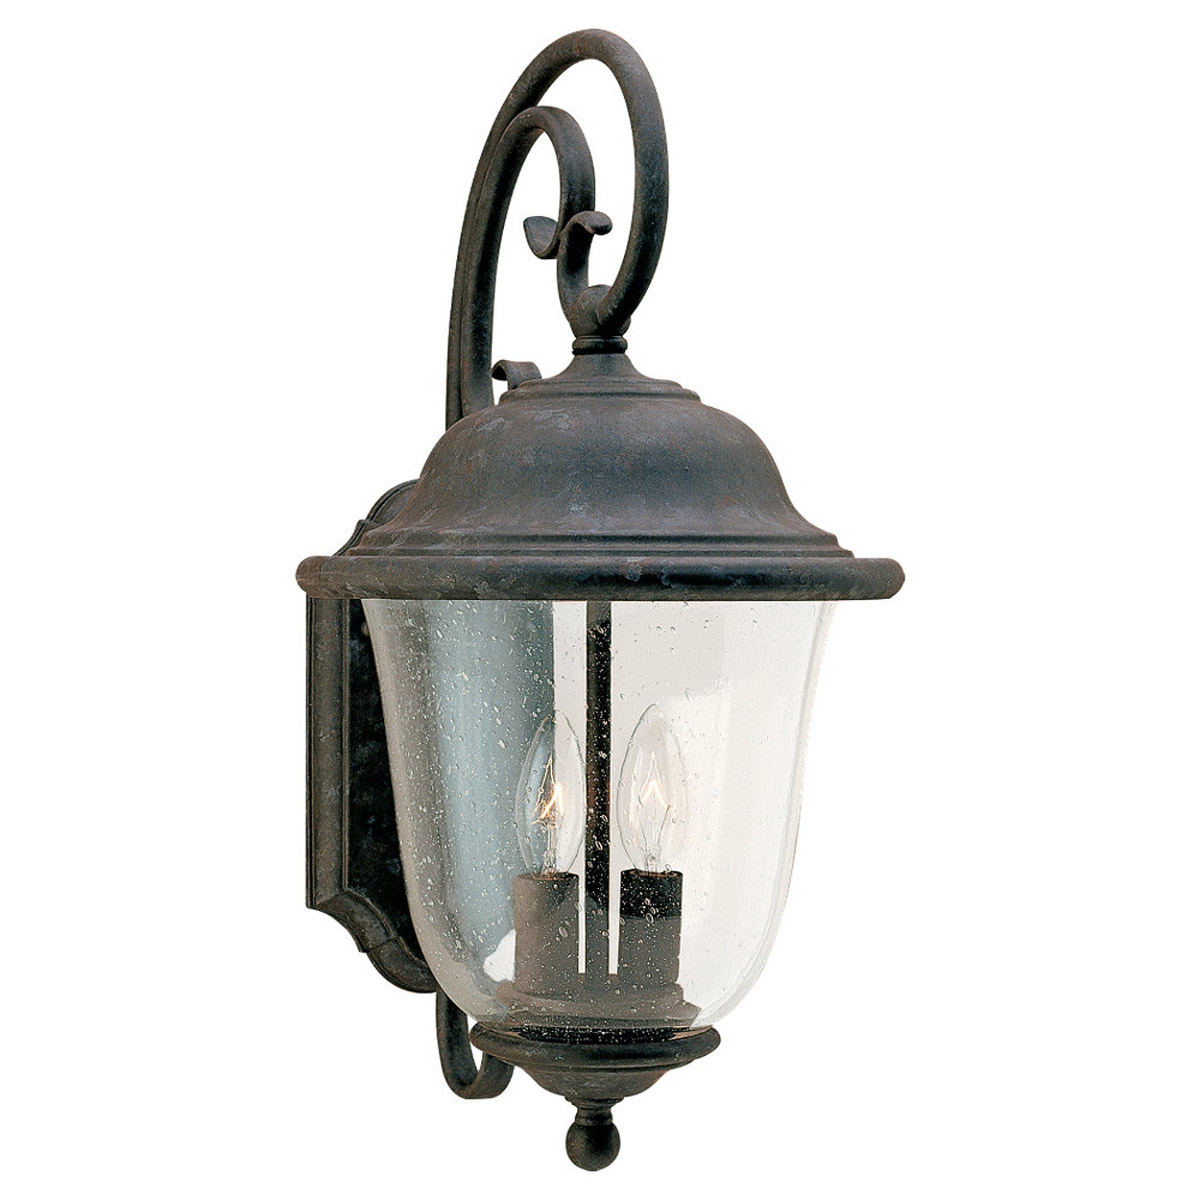 Sea Gull Lighting Trafalgar 2 Light Outdoor Wall Lantern in Oxidized Bronze 8460-46